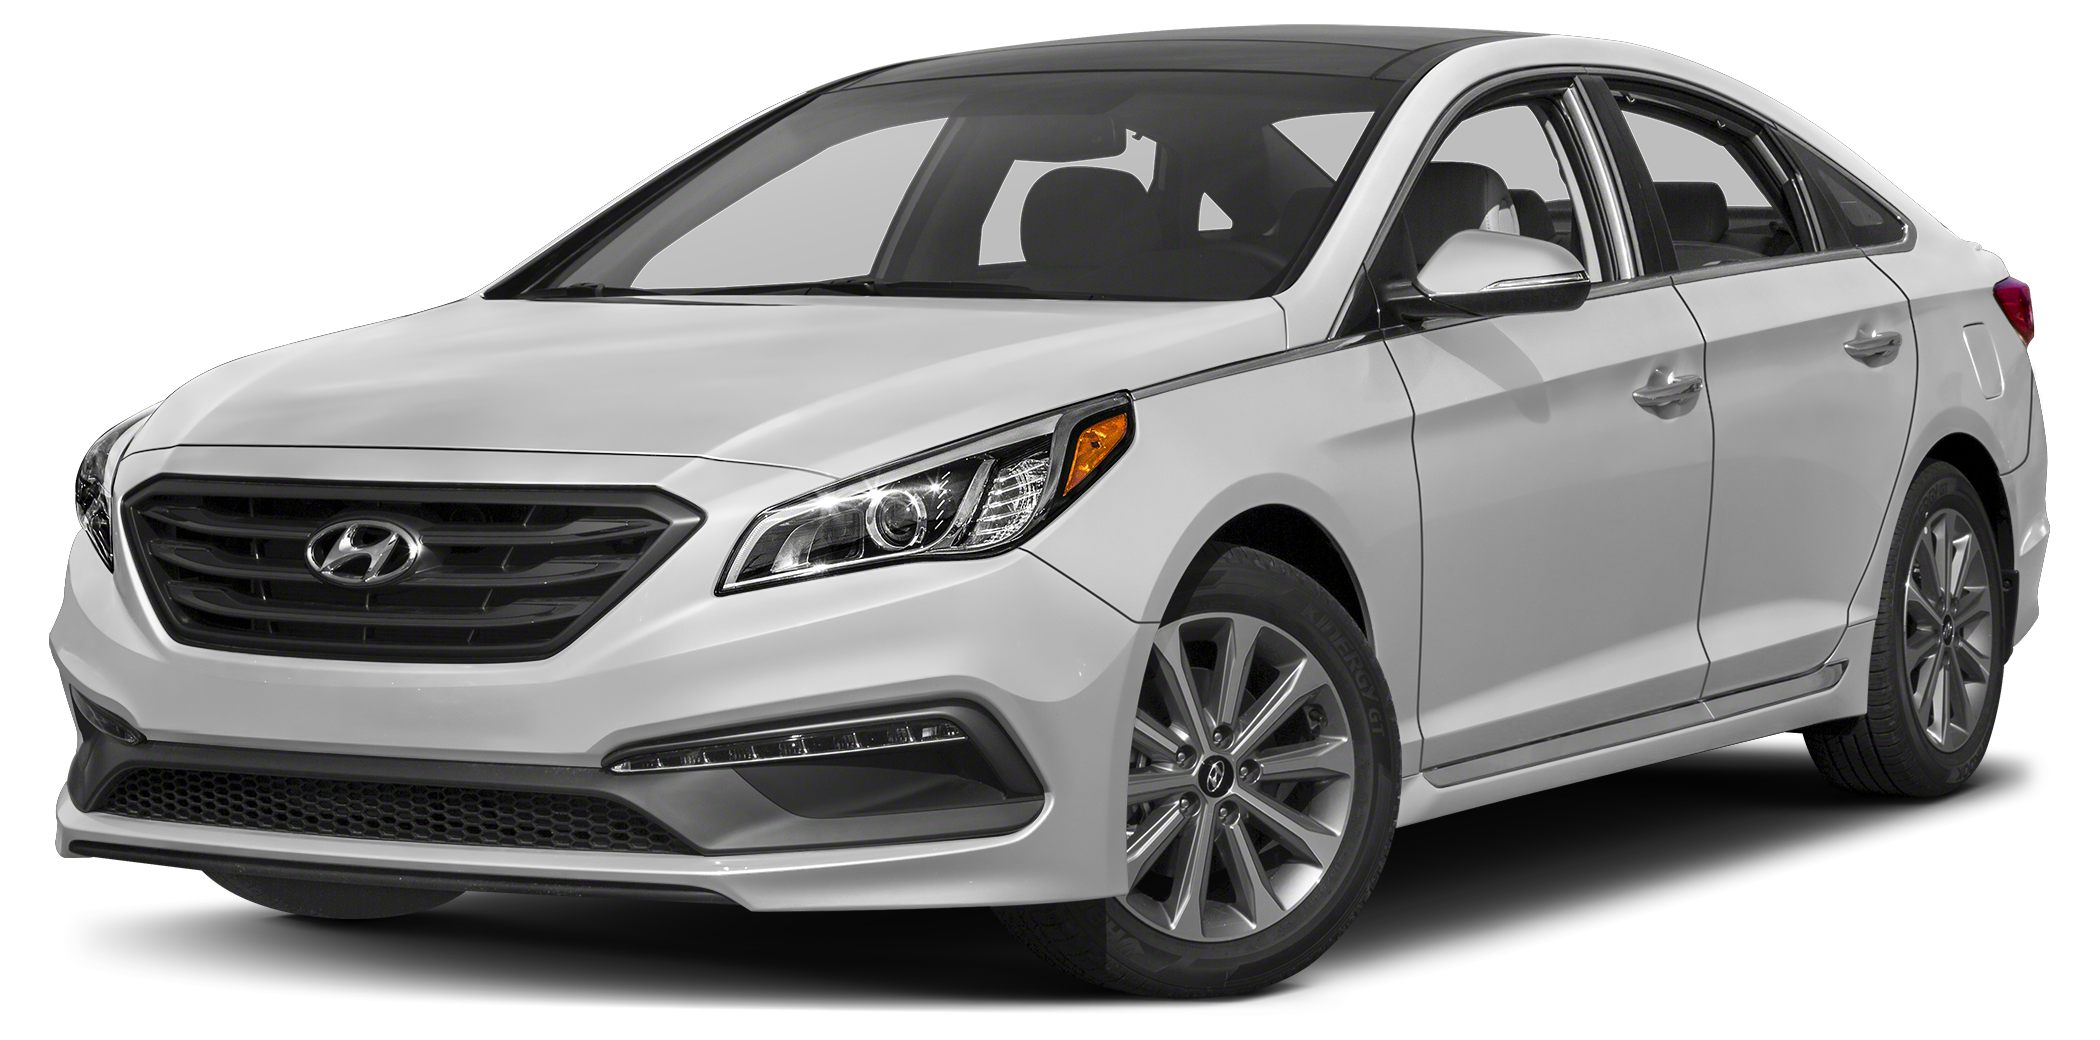 2015 Hyundai Sonata Limited 2015 Hyundai Sonata Limited in Gray and One Year Free Maintanence Tec